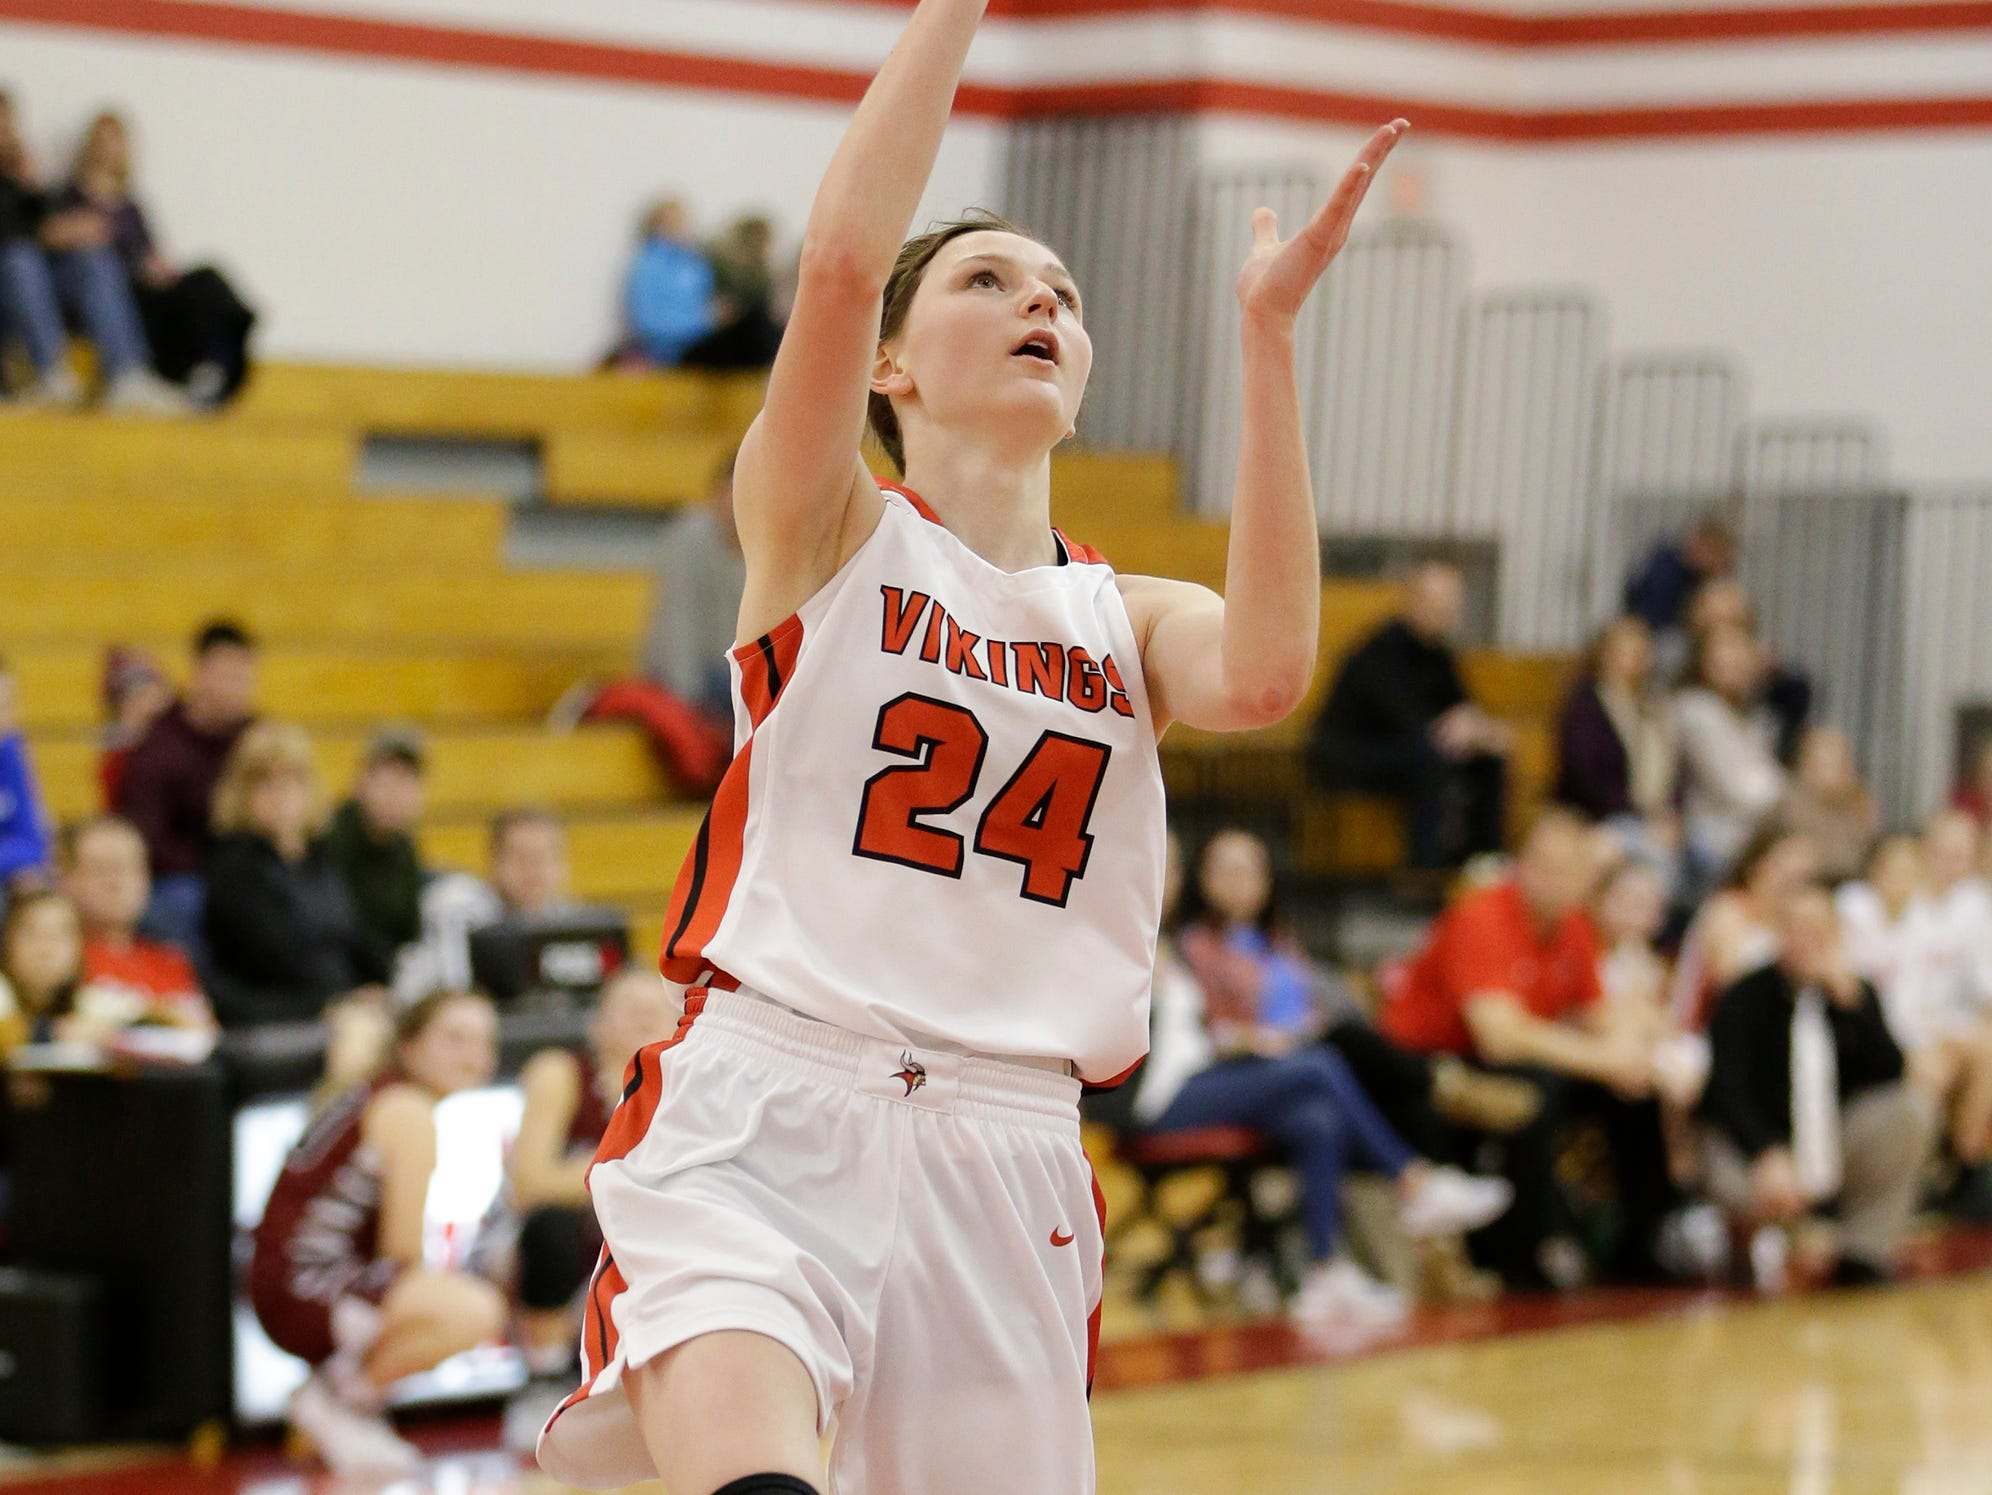 Valders' Emma Wagner shoots a layup against New Holstein at Valders High School Friday, February 8, 2019, in Valders, Wis. Joshua Clark/USA TODAY NETWORK-Wisconsin